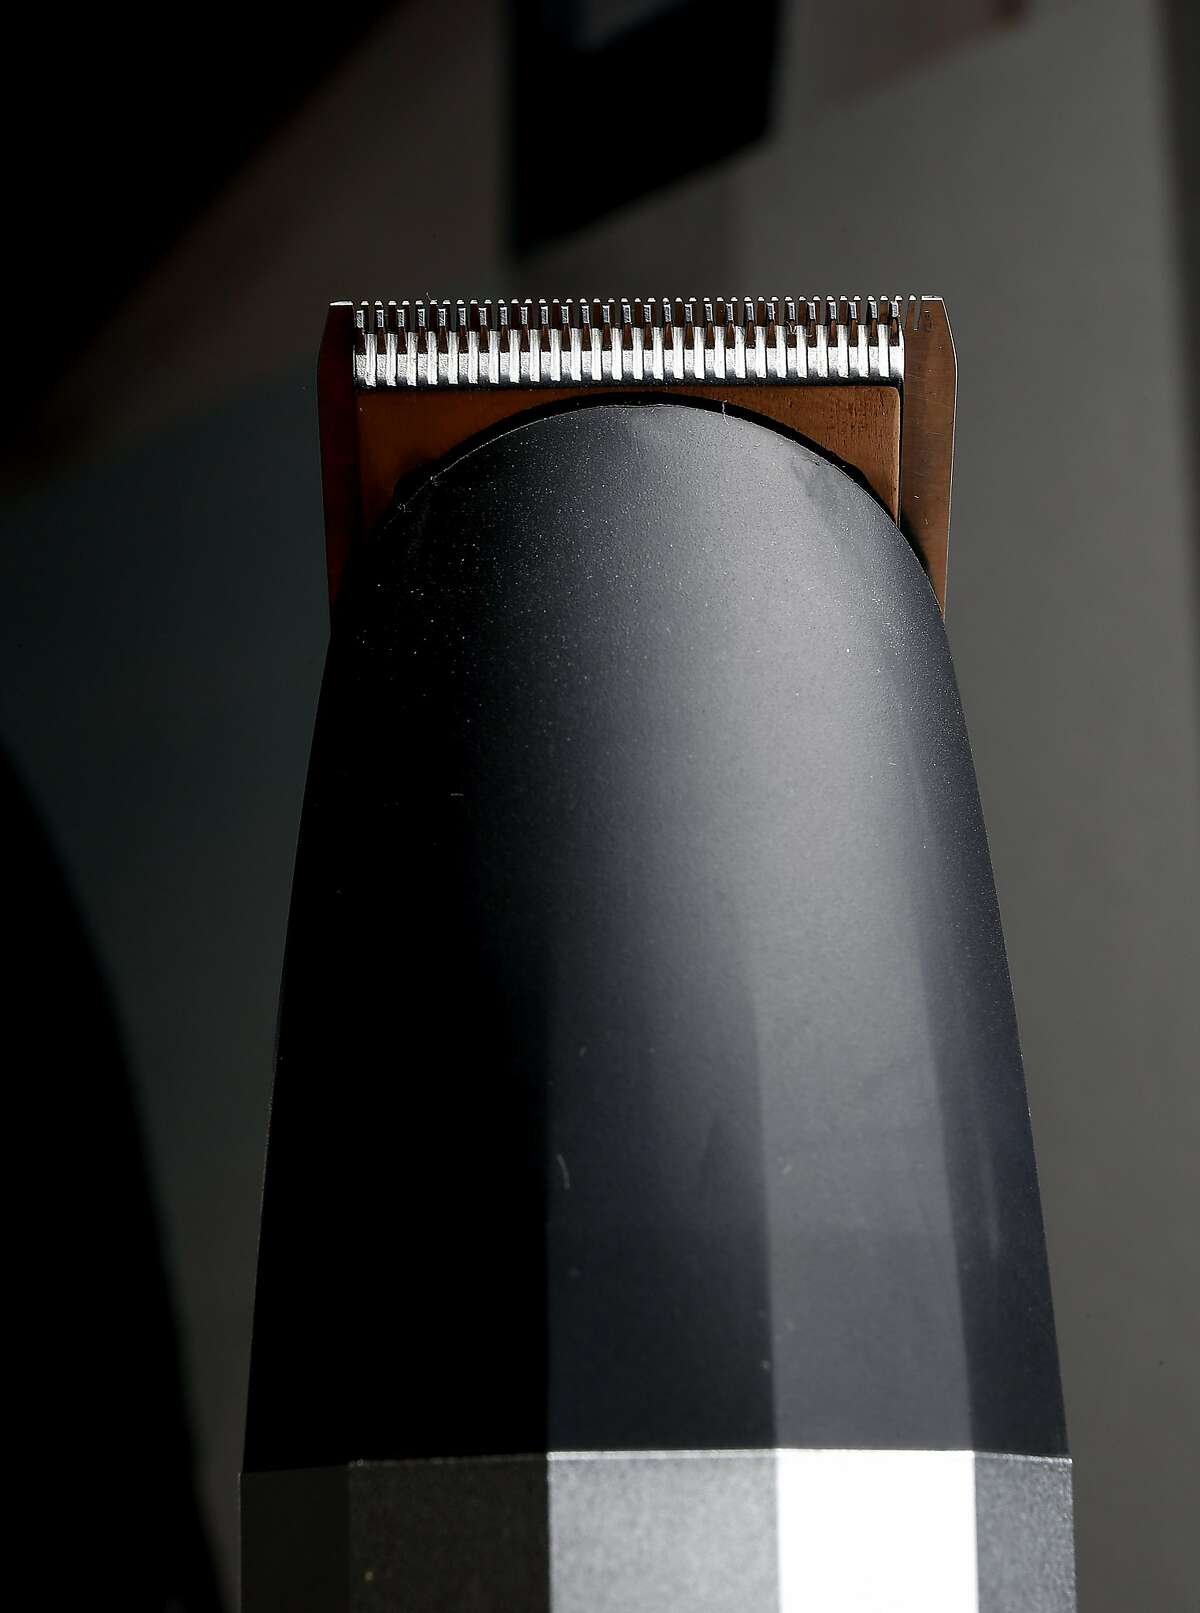 The Walker and Co., Bevel trimmer is on display at the company headquarters in Palo Alto, Calif., Wednesday, Dec. 14, 2016. The health and beauty company currently offers a shaving line geared toward people of color.